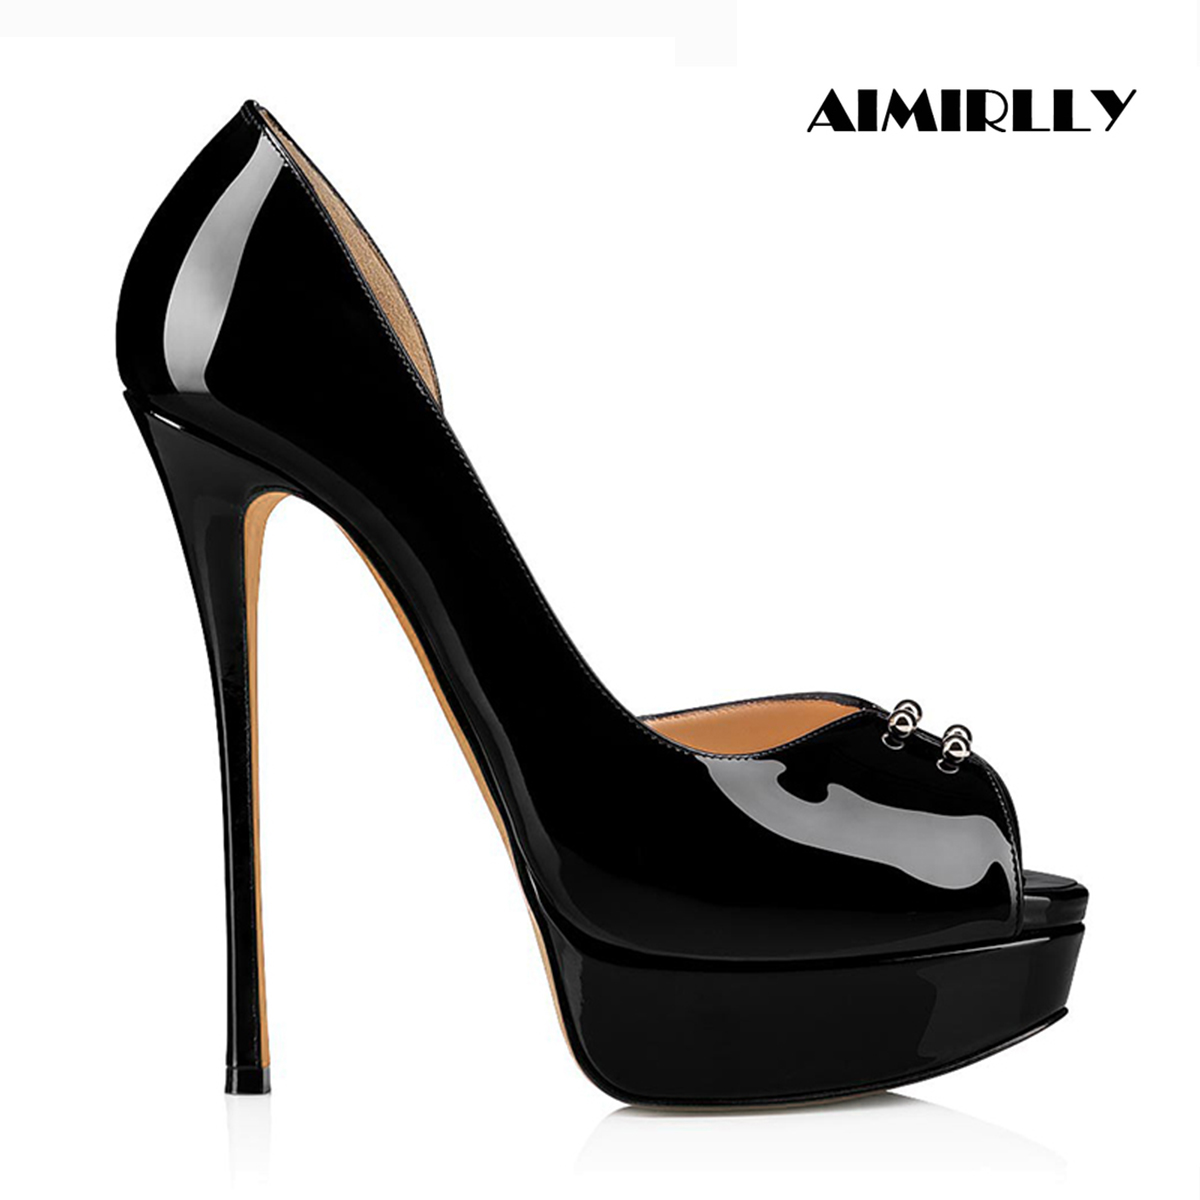 Aimirlly Women's Shoes Peep Toe High Heels Pumps Platform Shoes Ladies Party Clubwear Heels Slip On Patent Leather Female Shoes